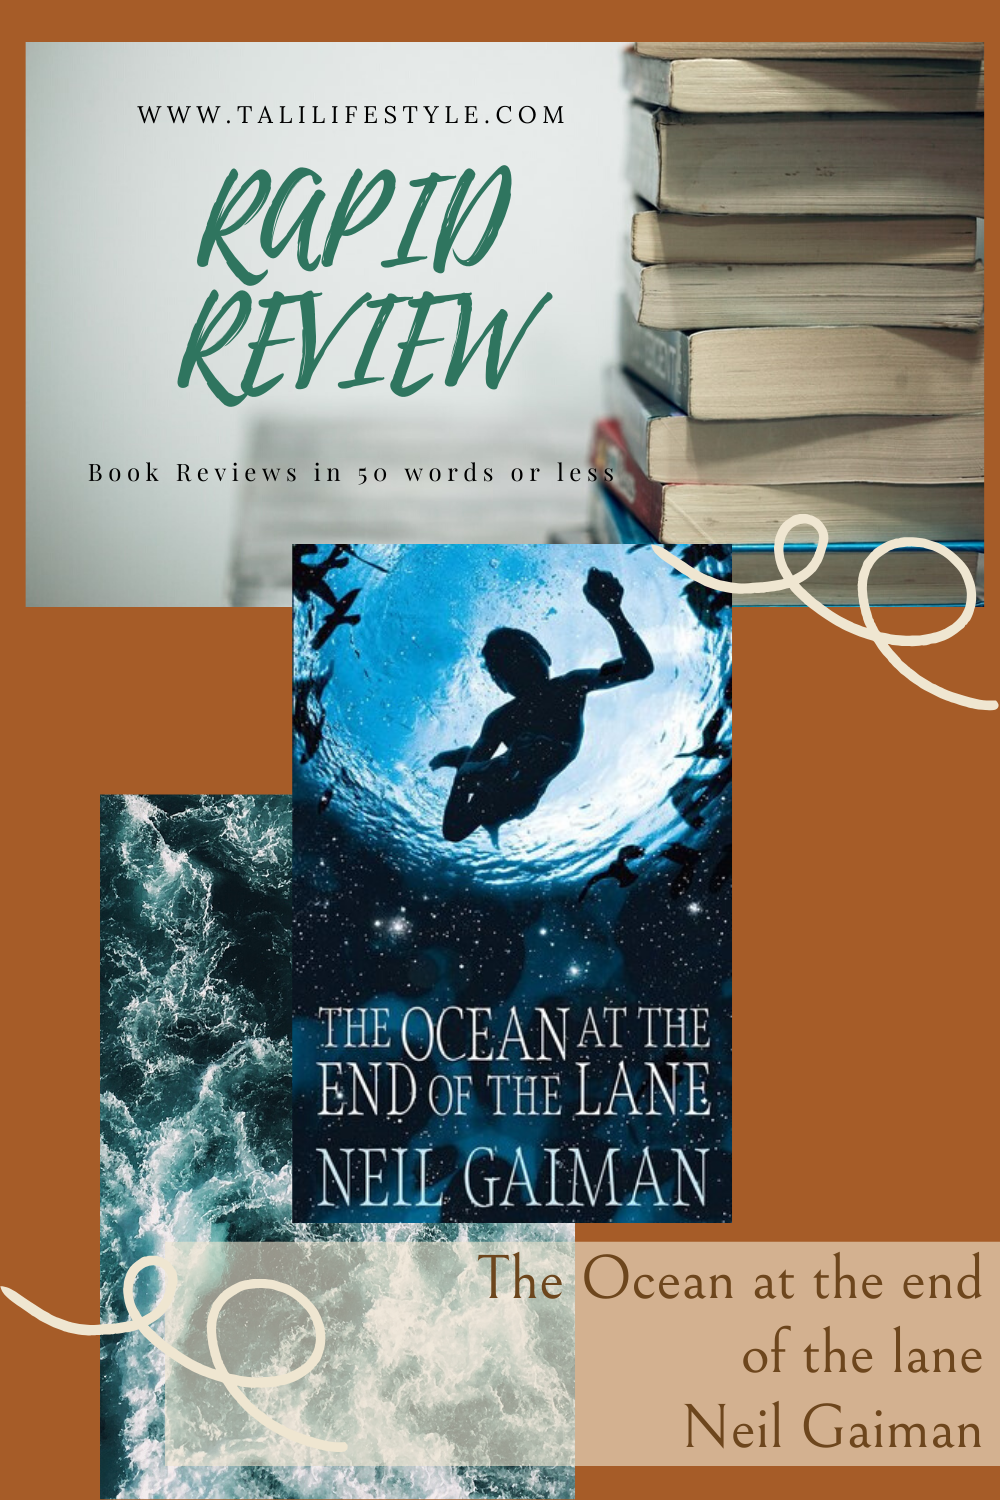 https://talilifestyle.com/2020/03/22/rapid-review-|-the-ocean-at-the-end-of-the-lane-by-neil-gaiman/